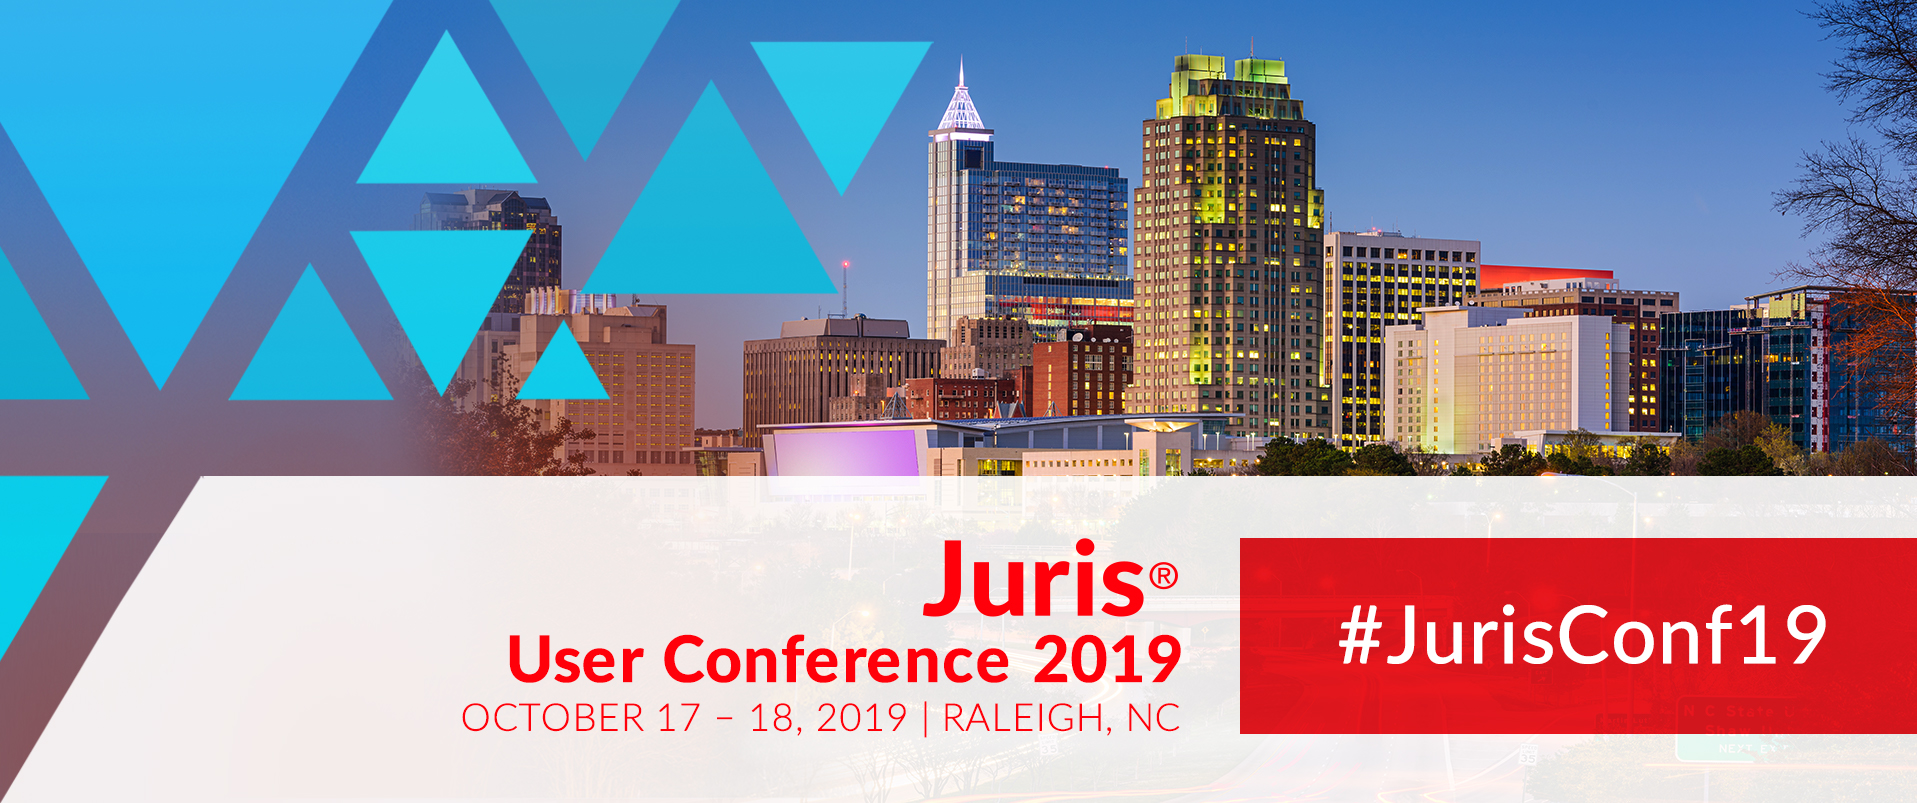 Juris User Conference 2019